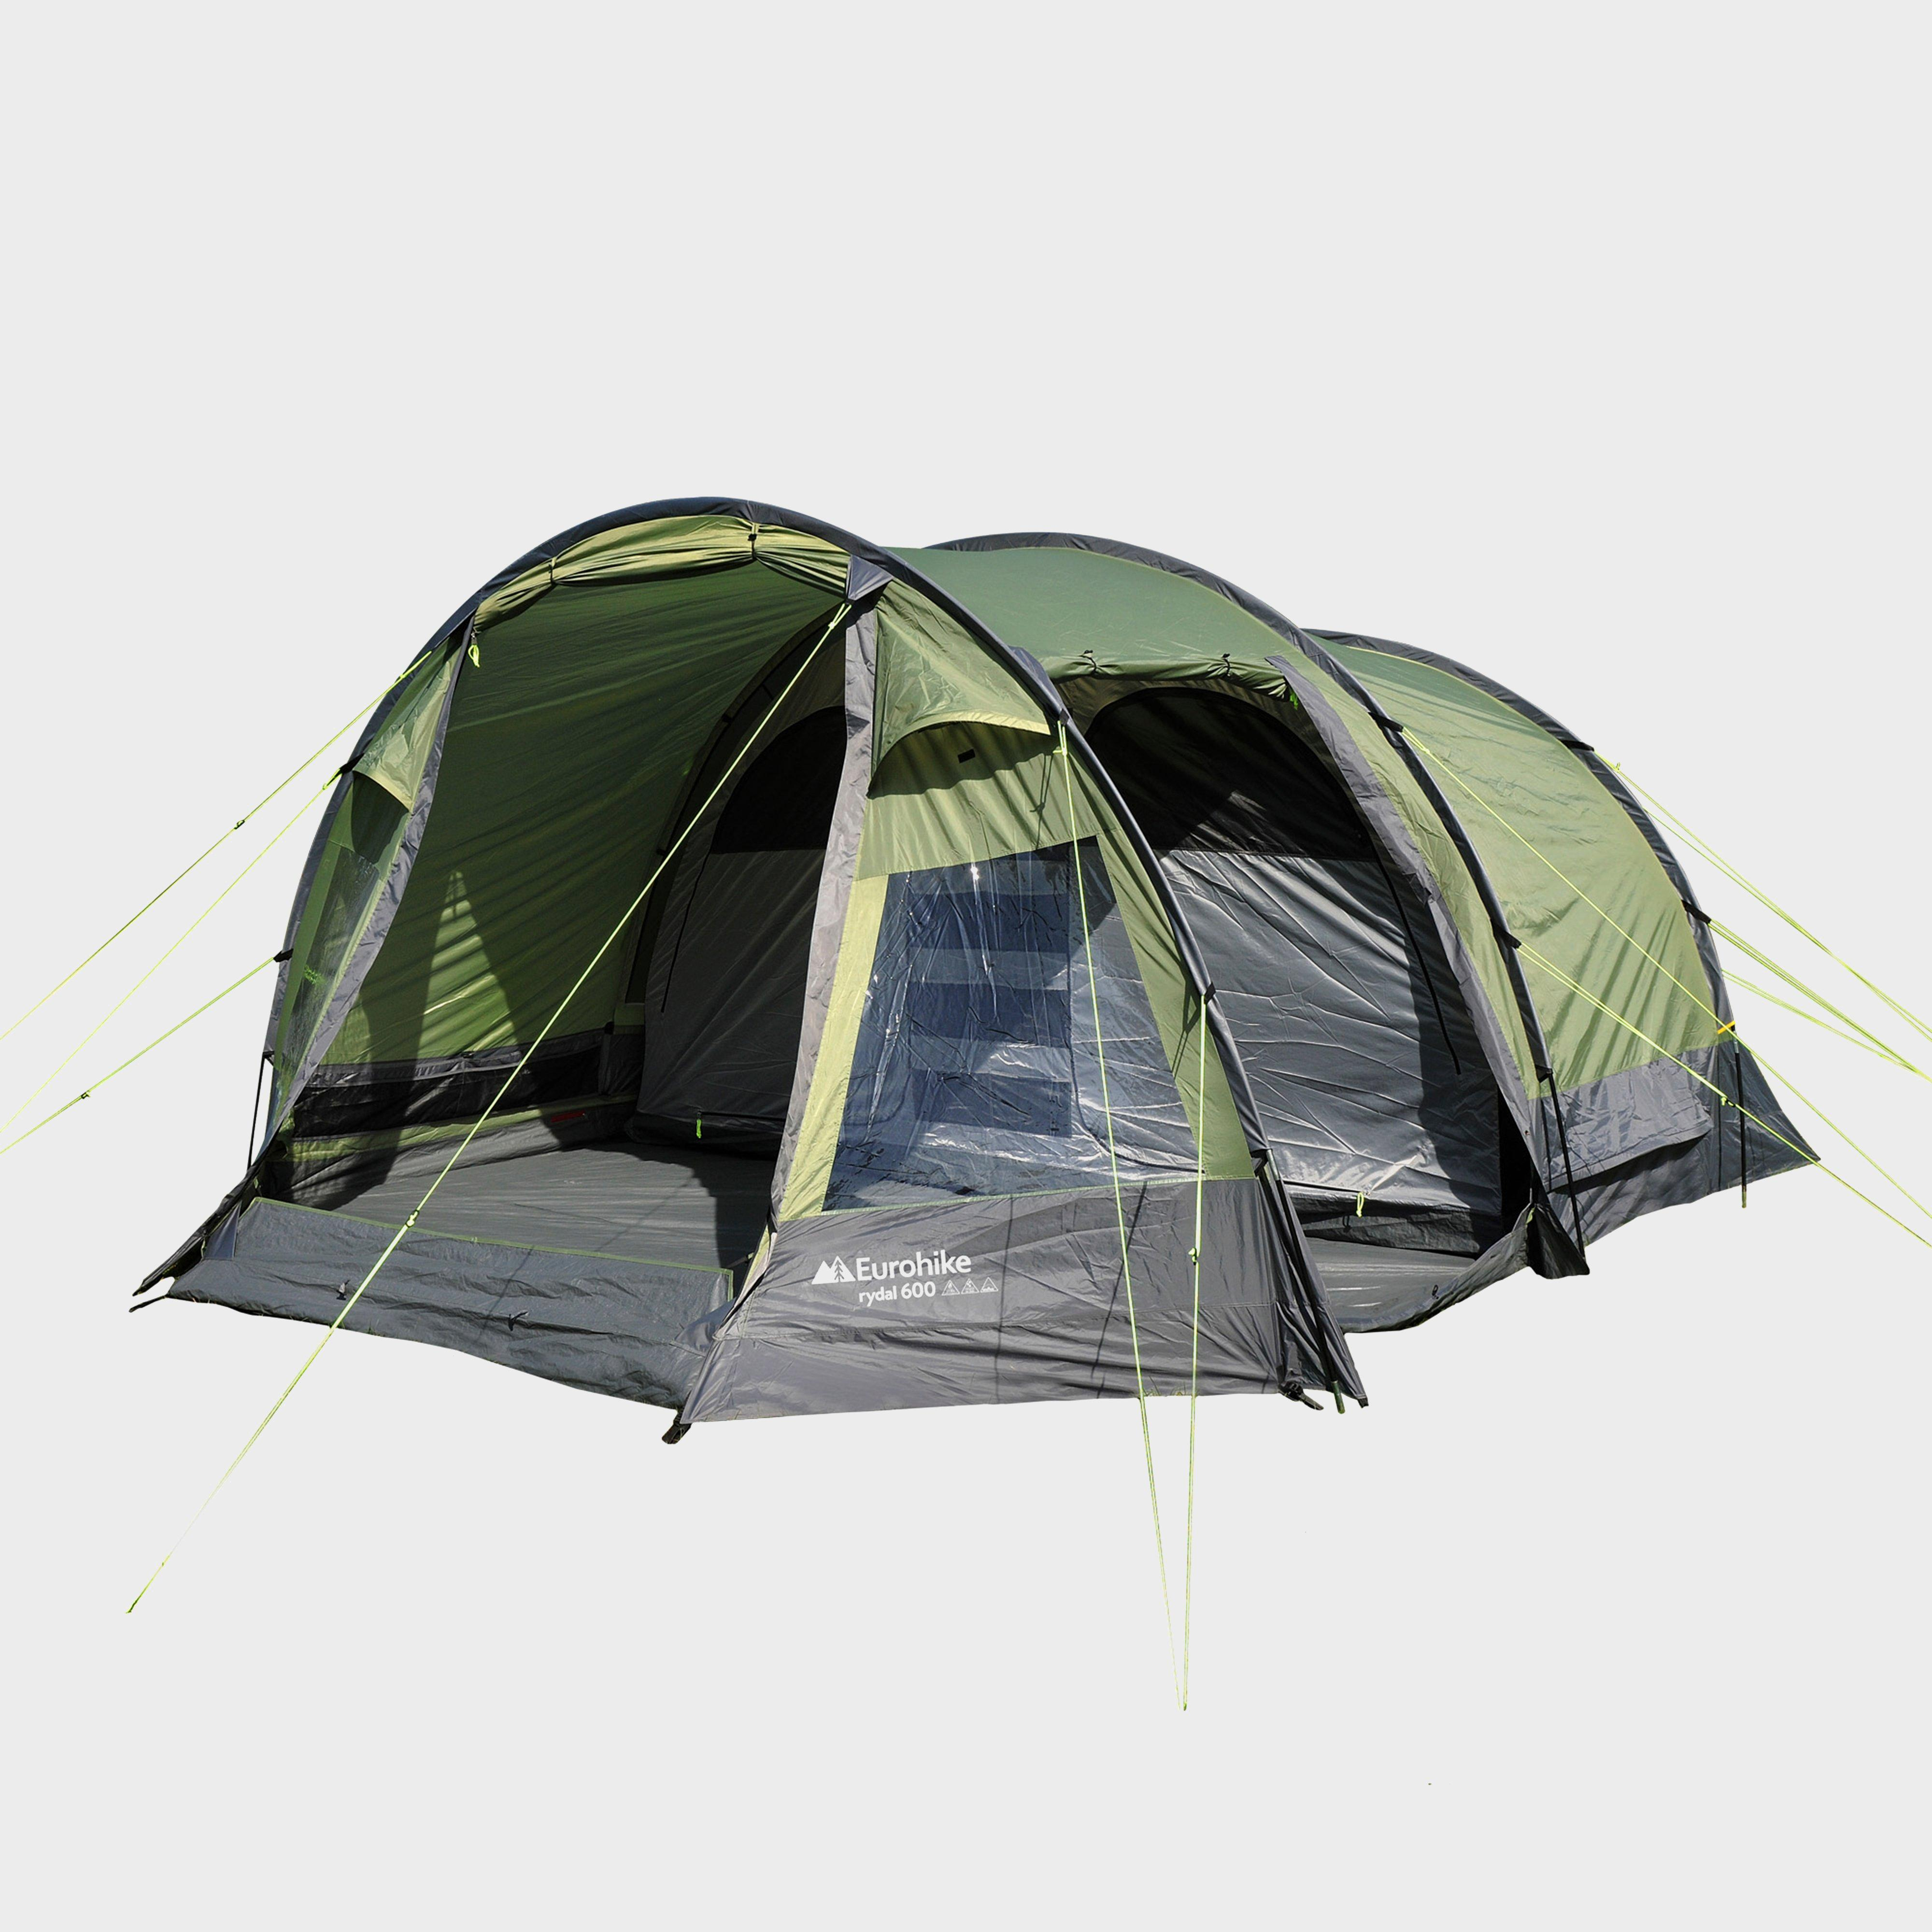 EUROHIKE Rydal 600 6 Person Tent & Eurohike Rydal 600 6 Person Tent